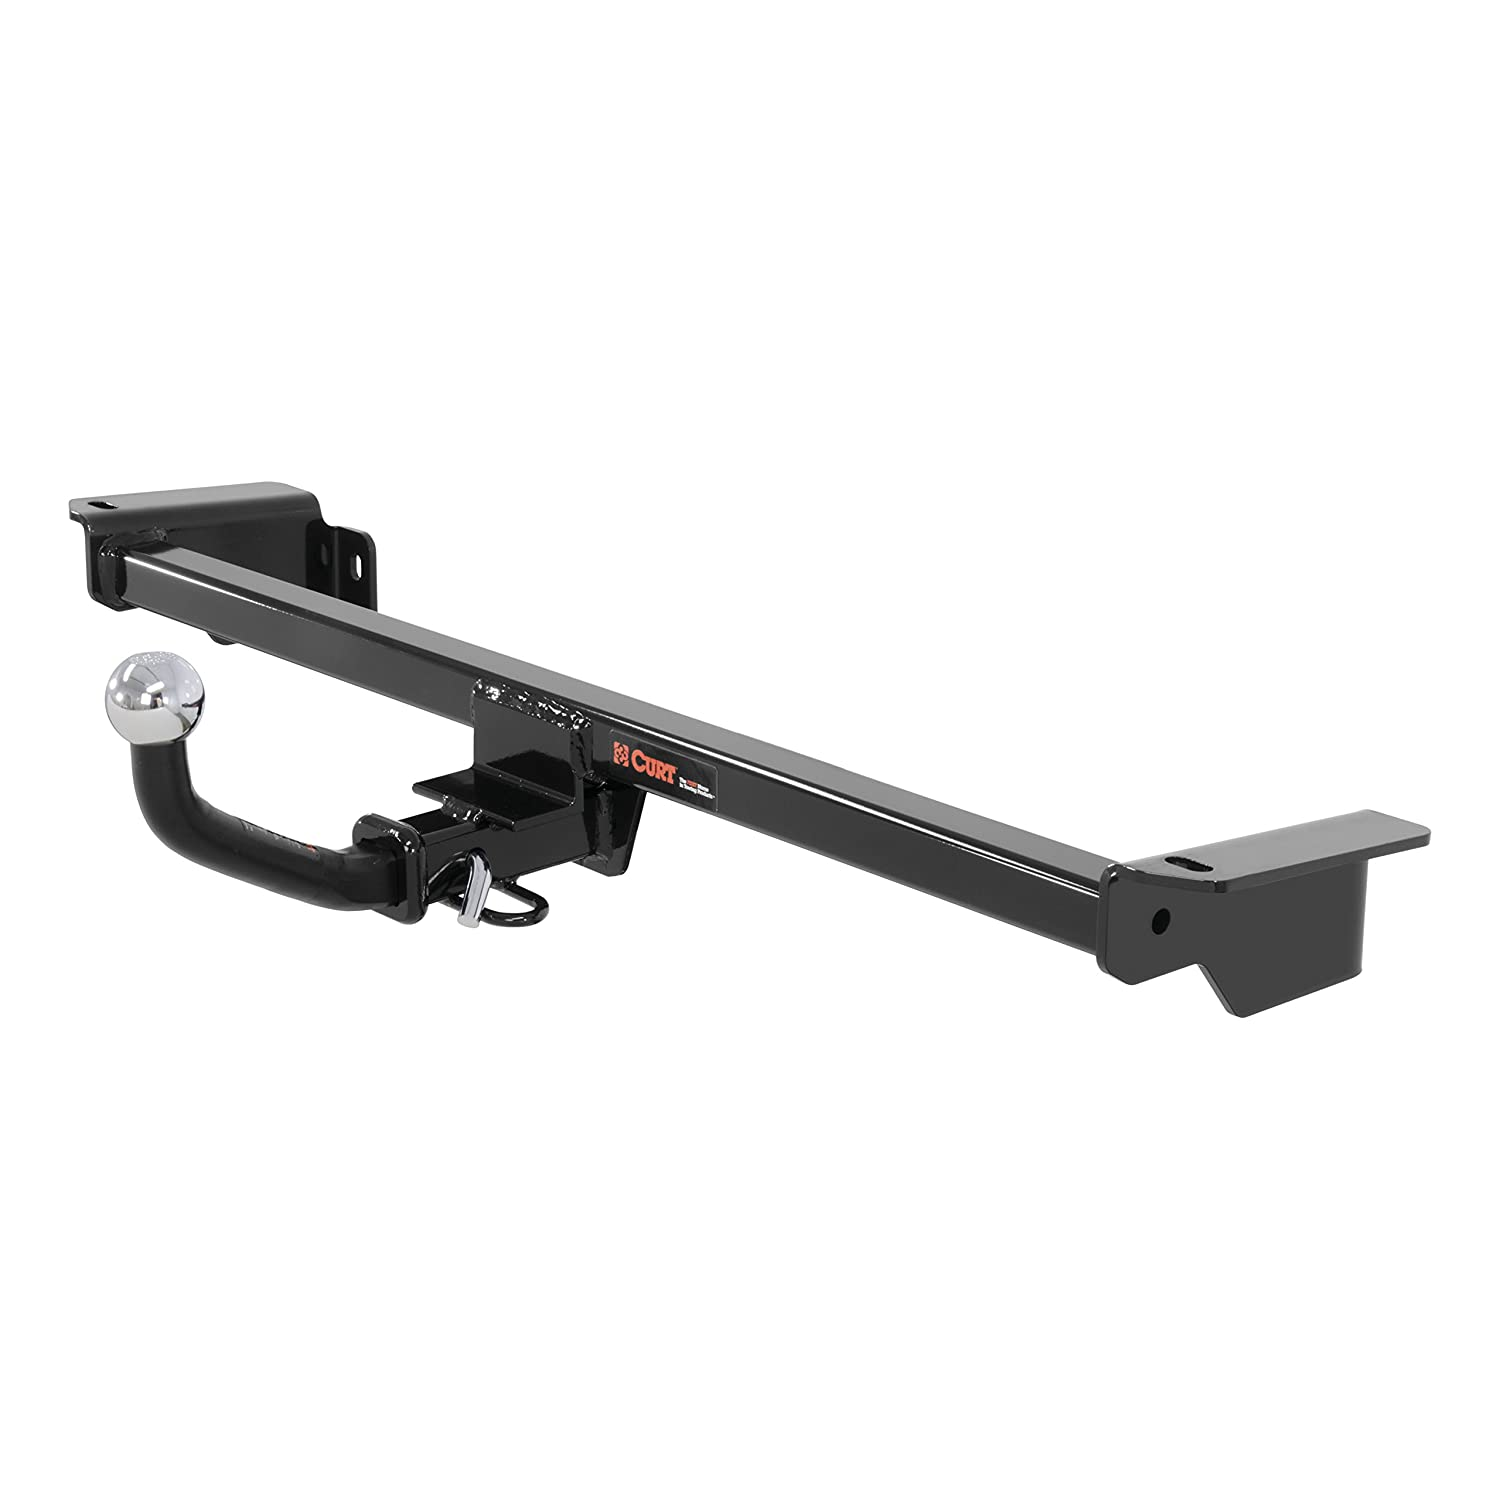 CURT 110553 Class 1 Trailer Hitch with Ball Mount 1-1//4-Inch Receiver  for Select Ford Fiesta